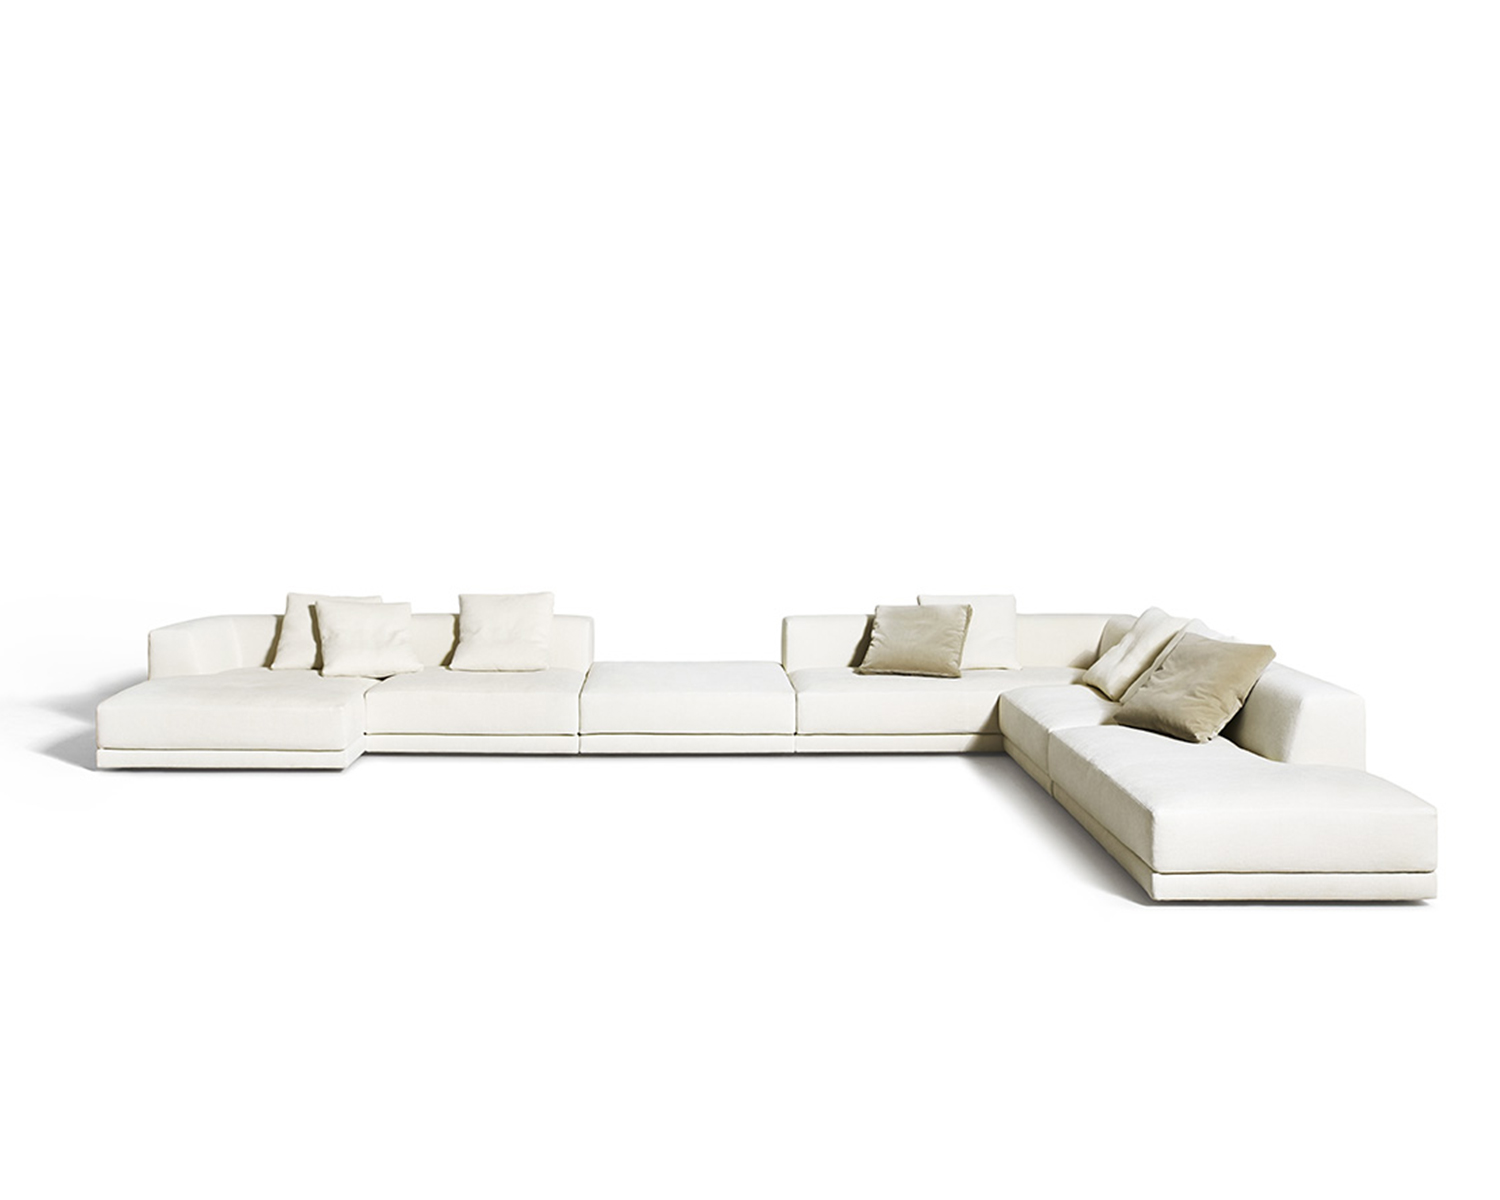 White Alberese modular sectional with throw pillows in various neutral colours on white background